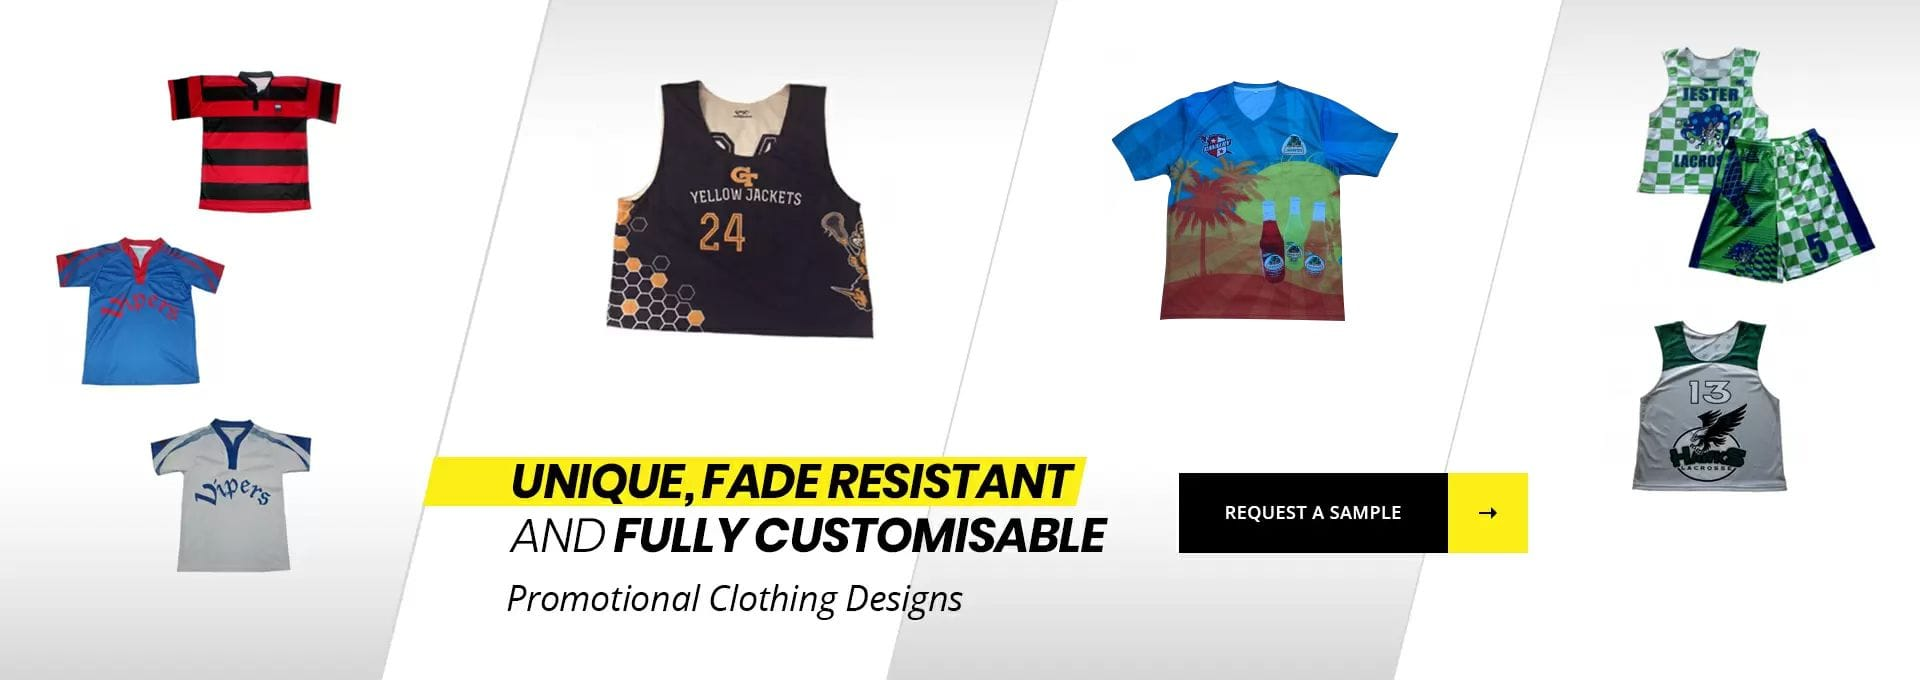 Custom Design Clothing | Promotional clothing designs